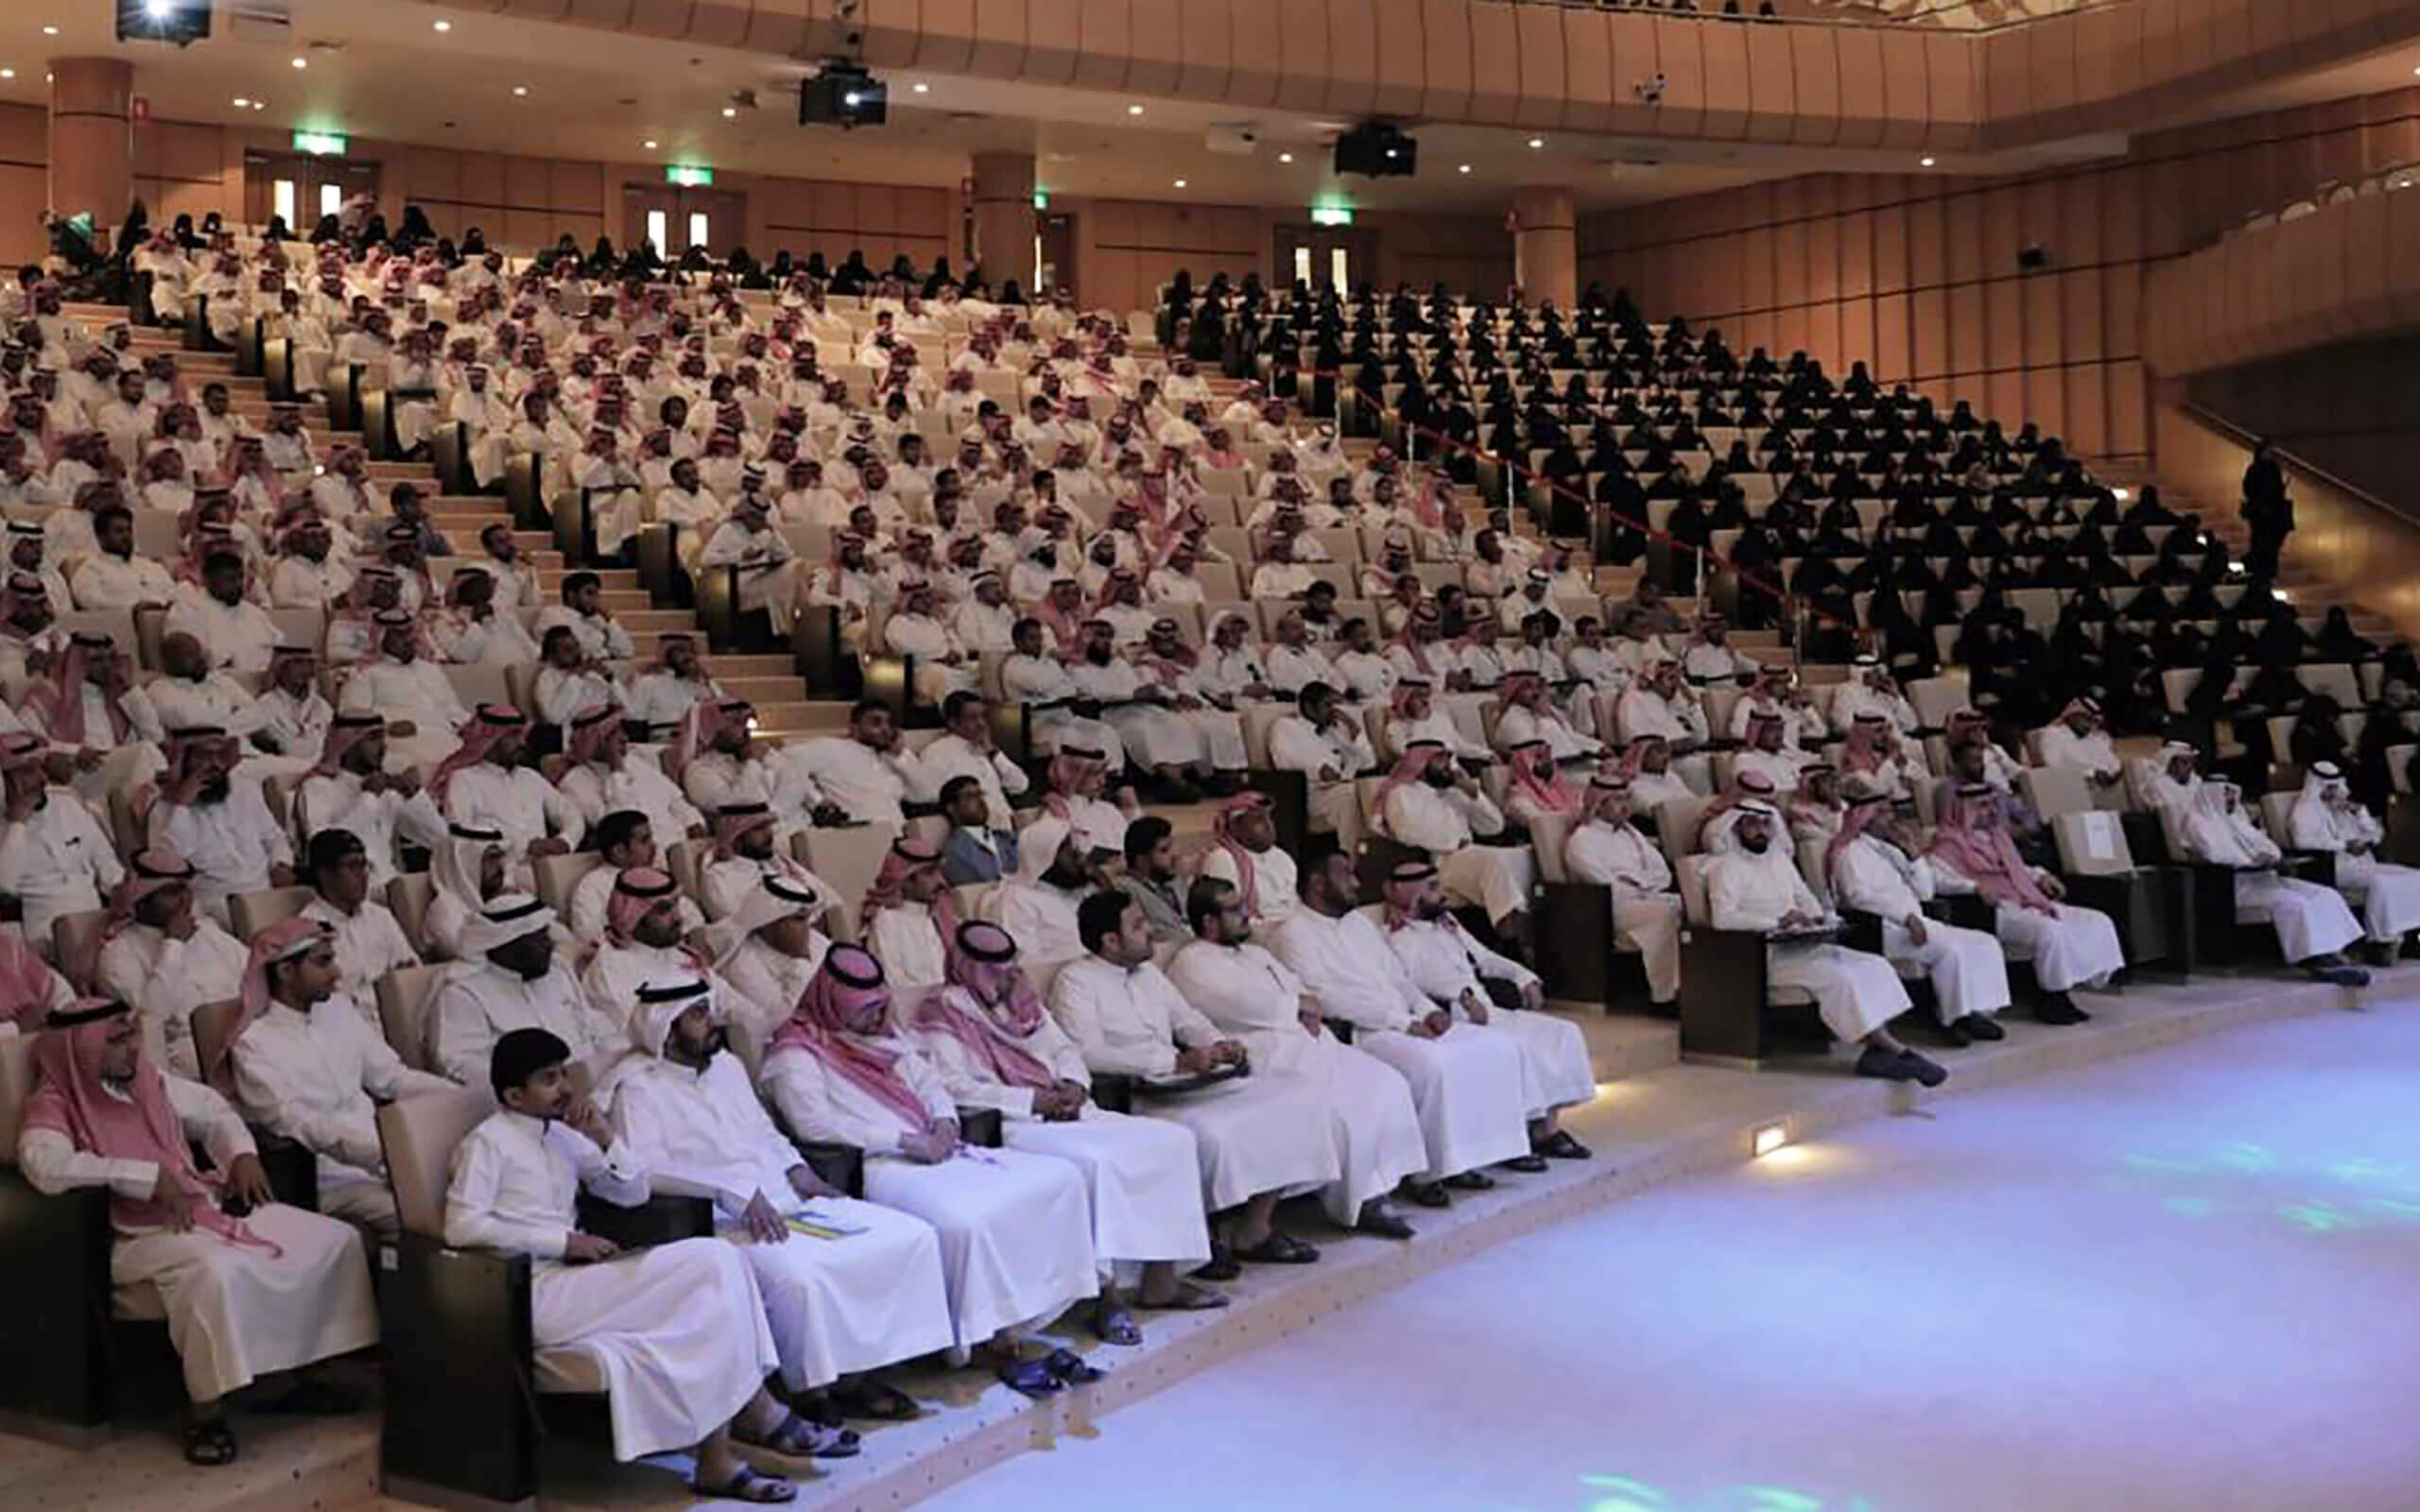 People sat in lecture theatre for Health and Safety conference in Saudi Arabia